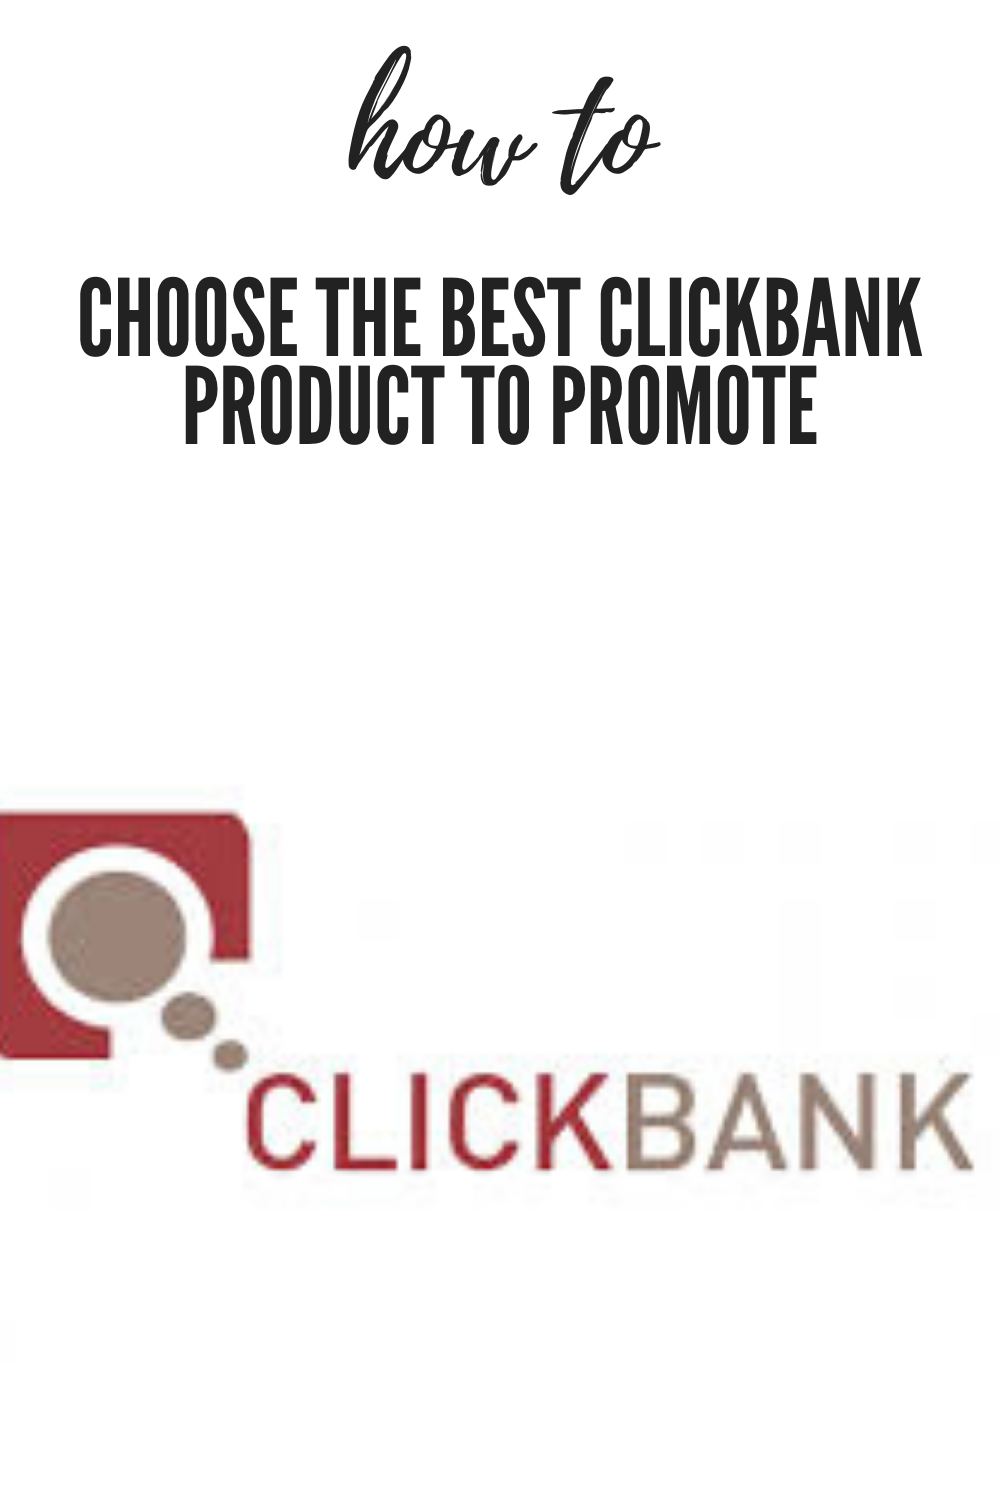 How To Choose The Best Clickbank Product To Promote